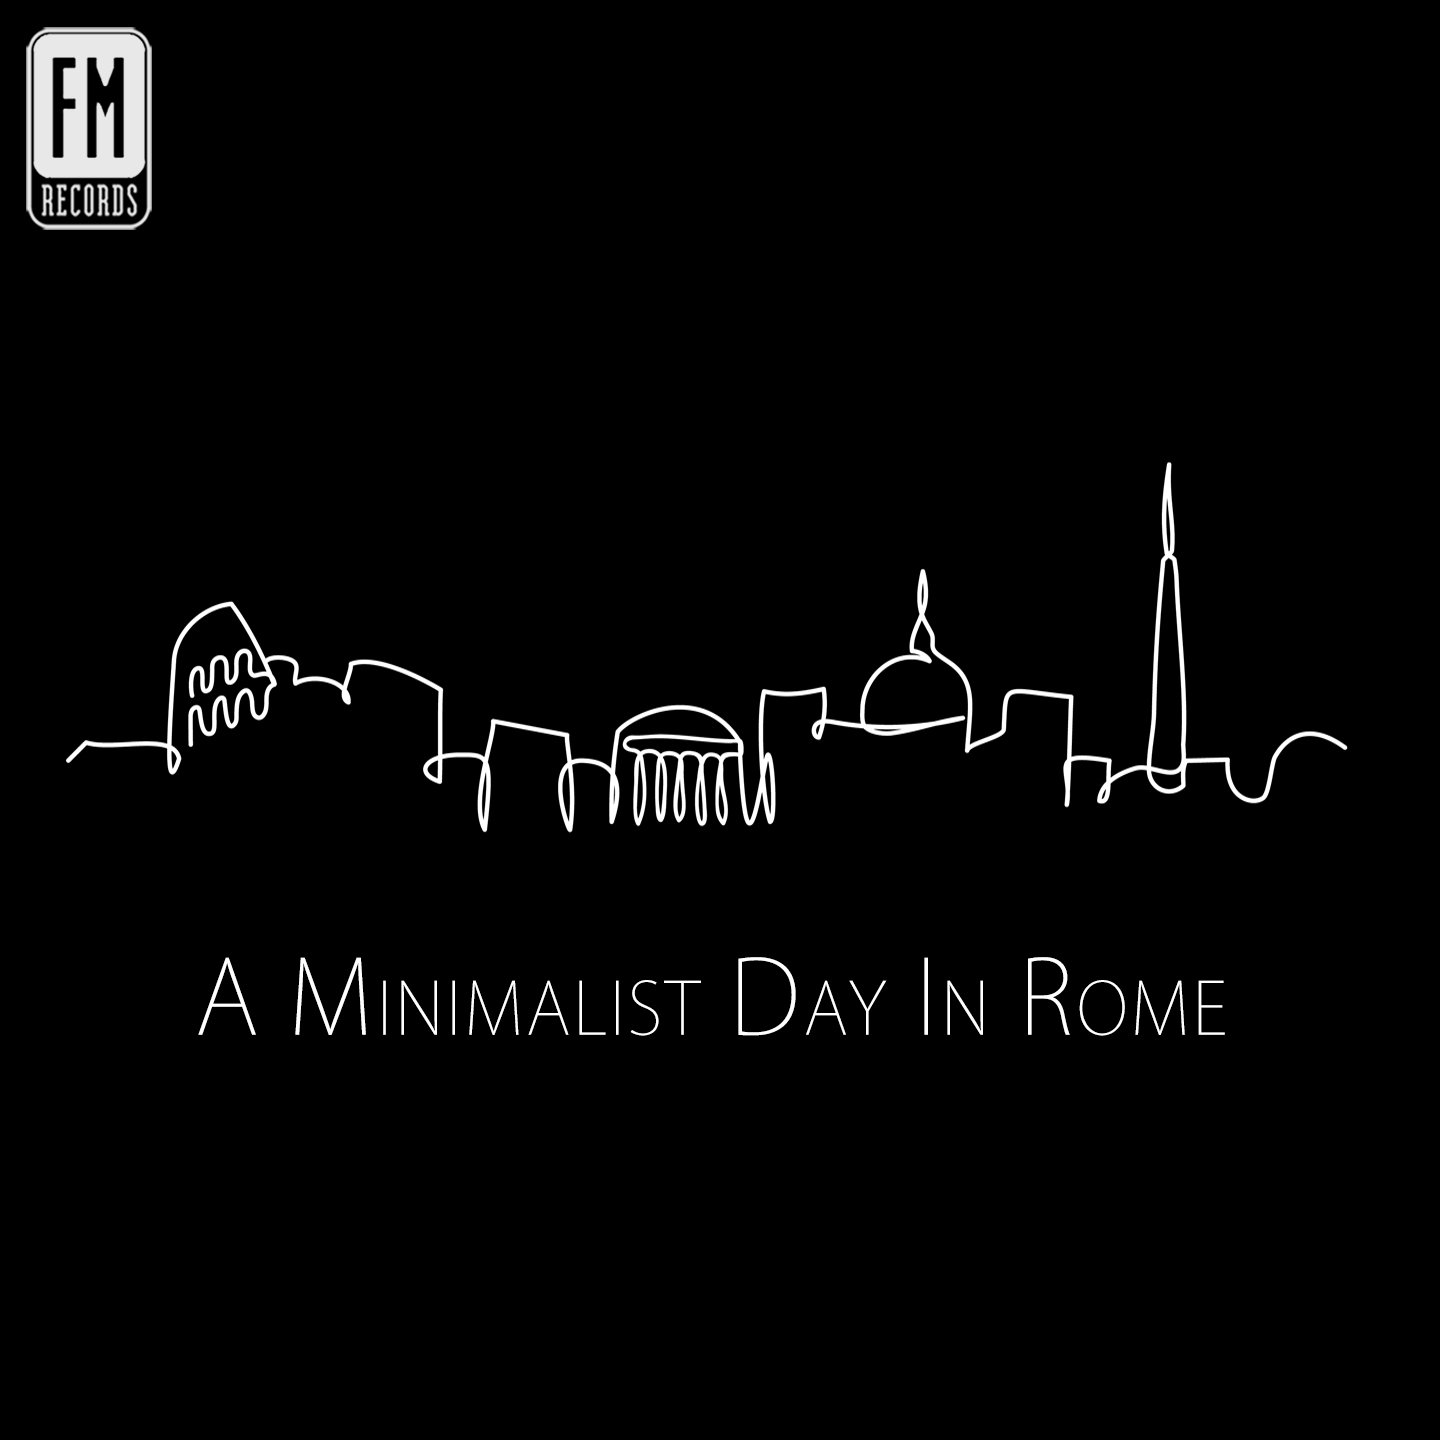 A Minimalist Day In Rome